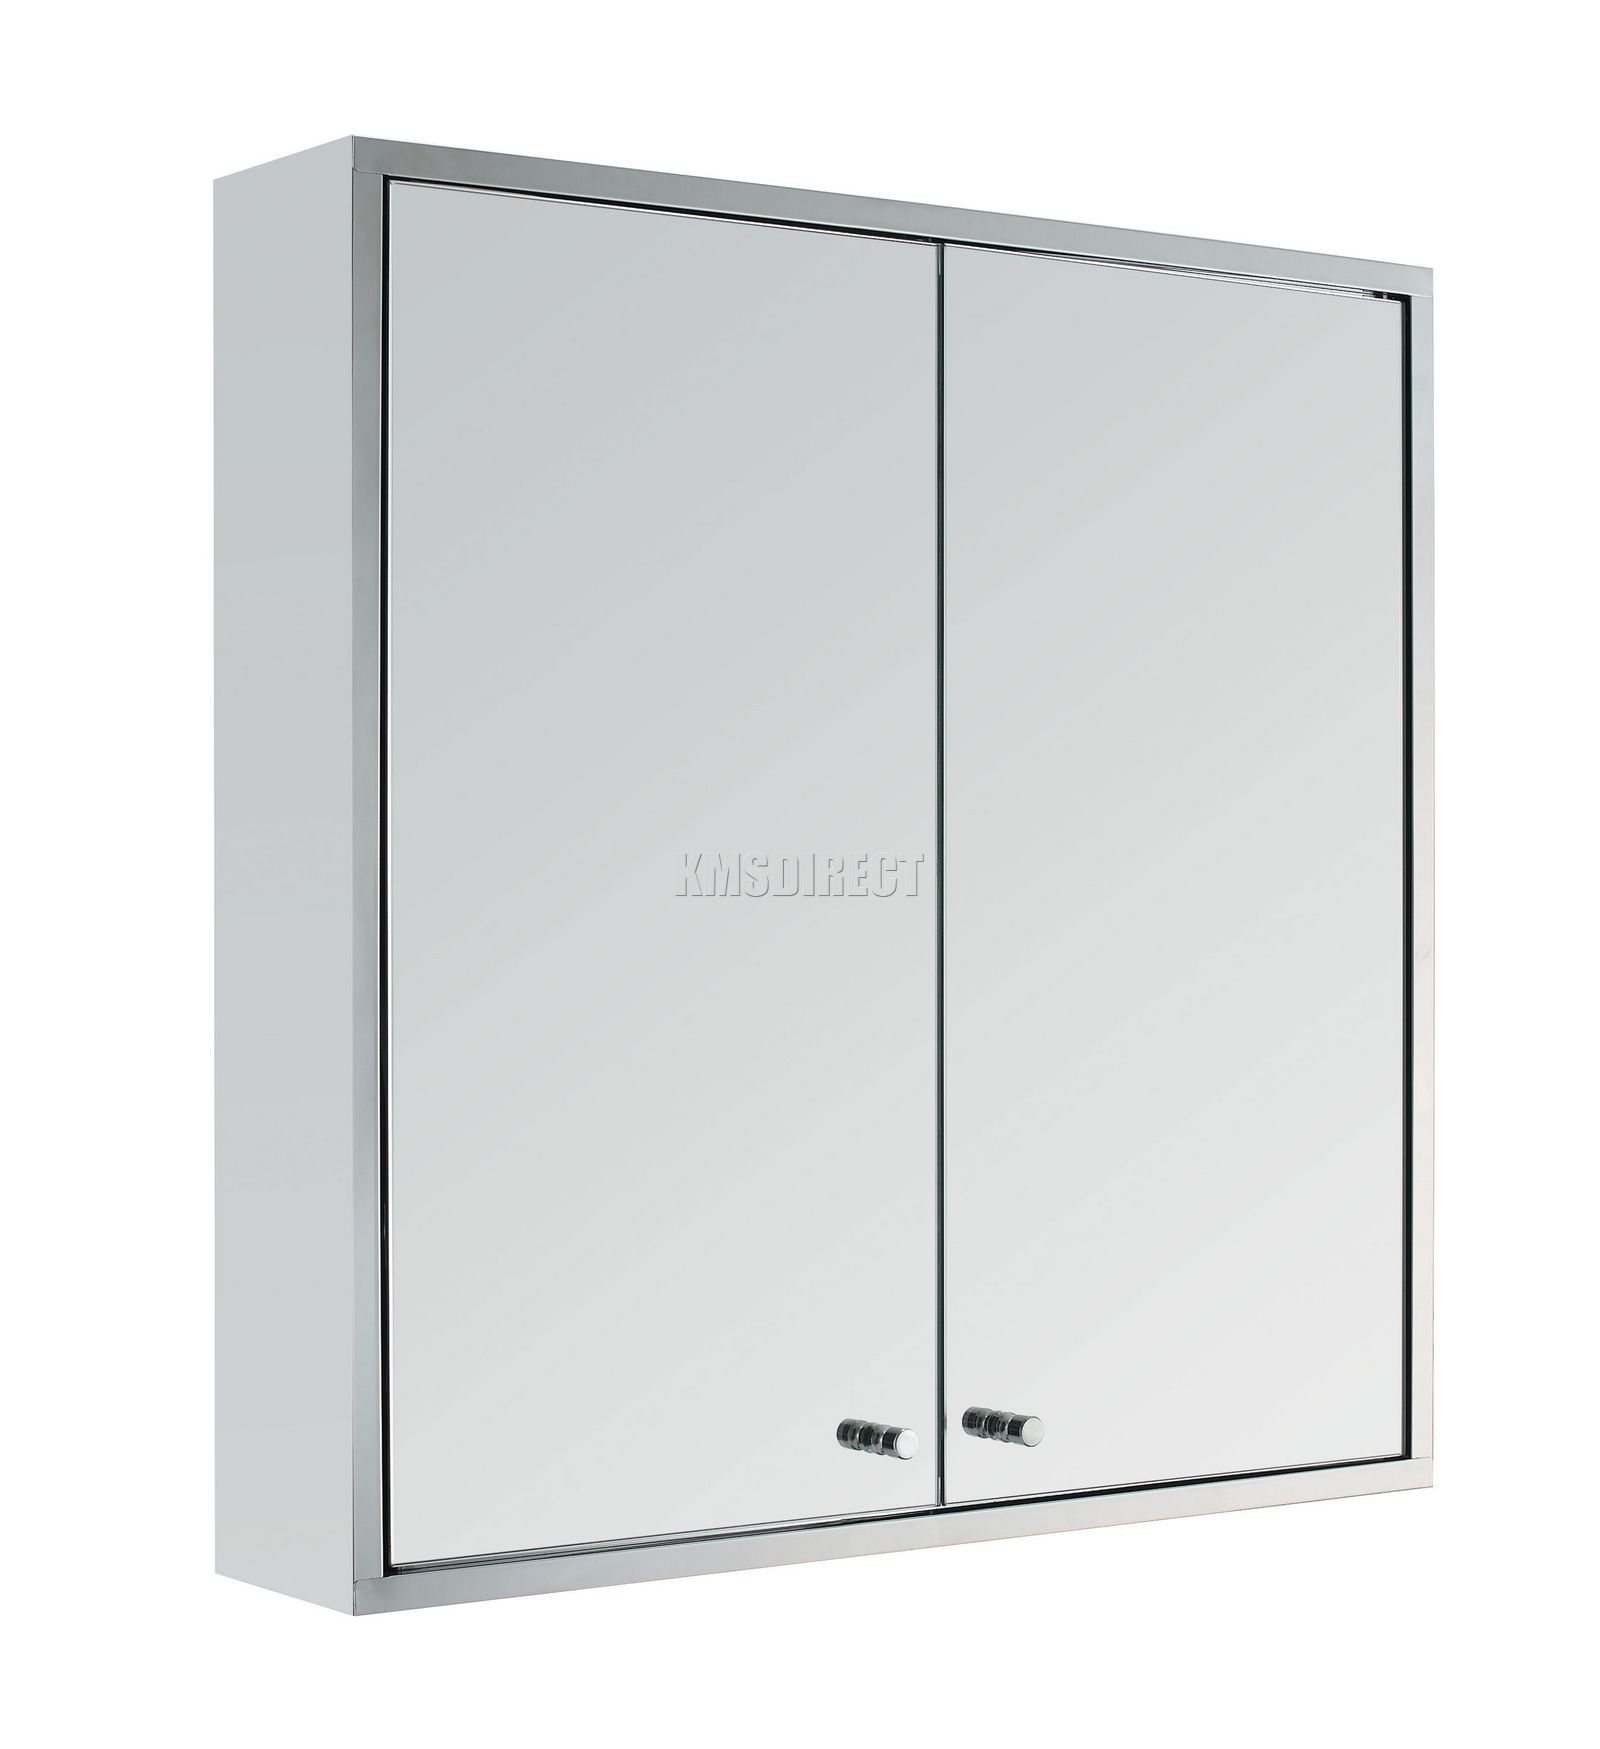 stainless steel wall mount mirror bathroom cabinet storage cupboard